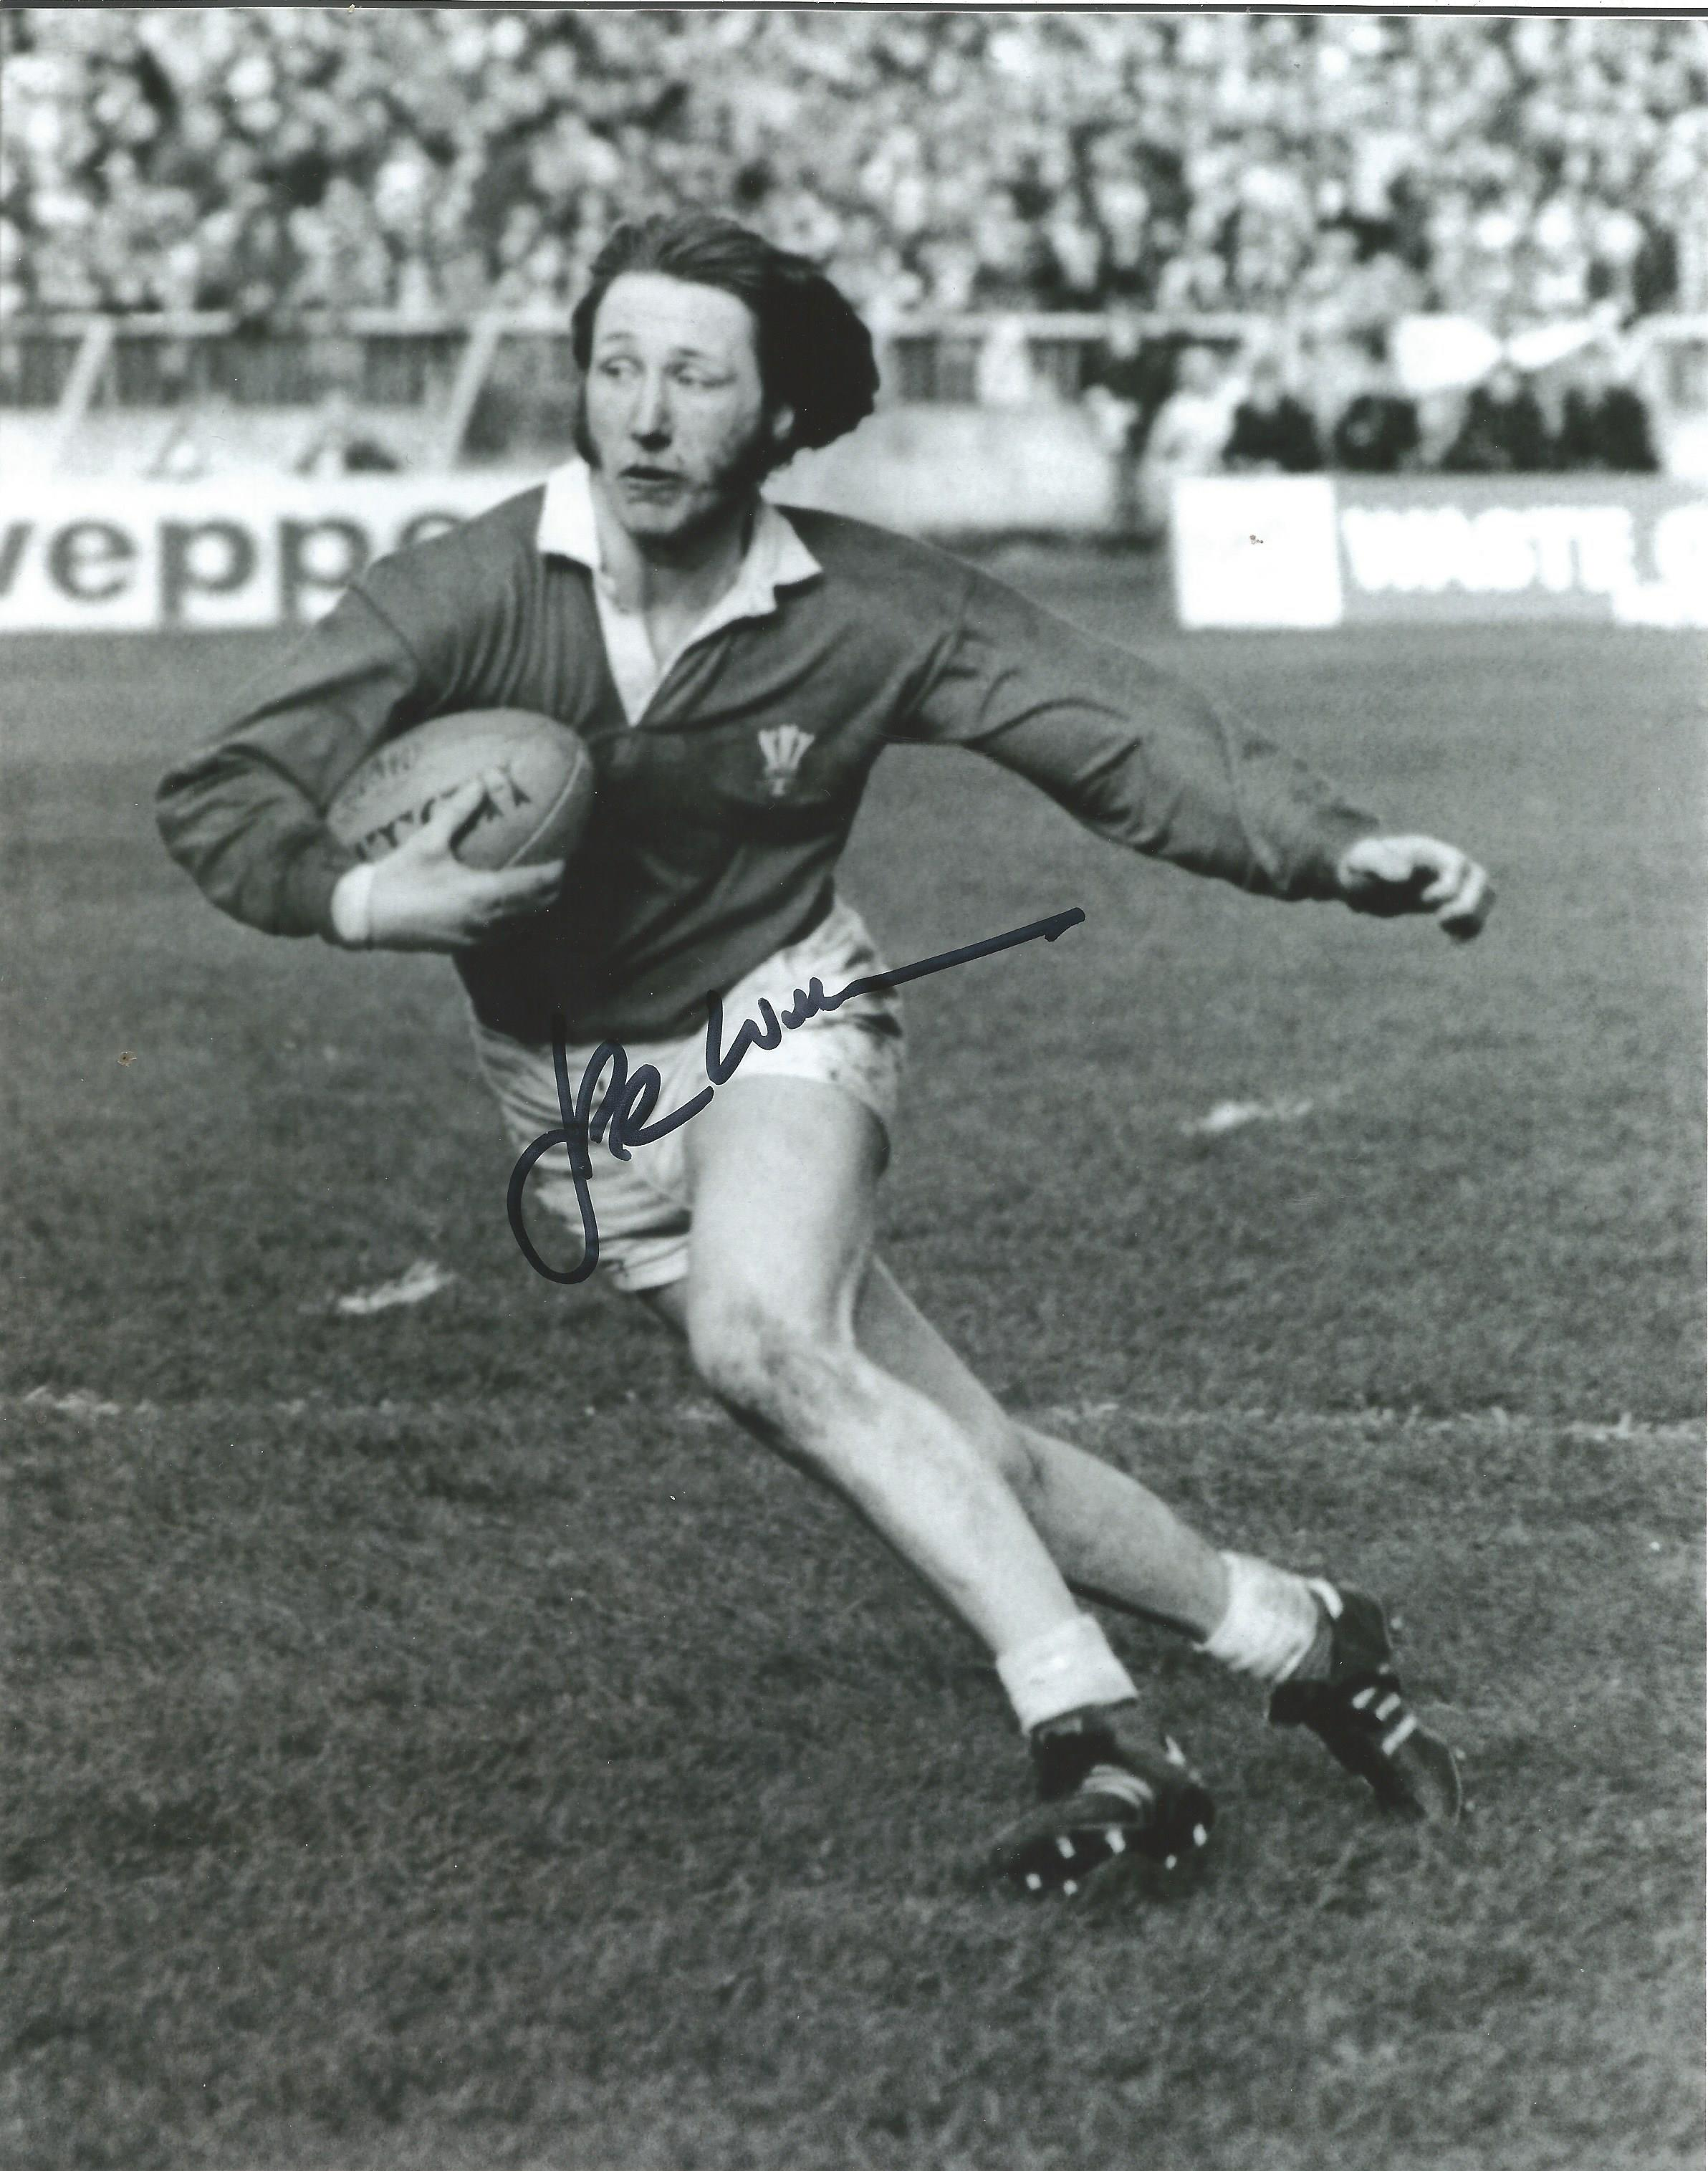 Lot 403 - Rugby Union JPR Williams 10x8 signed b/w photo pictured in action for Wales. John Peter Rhys